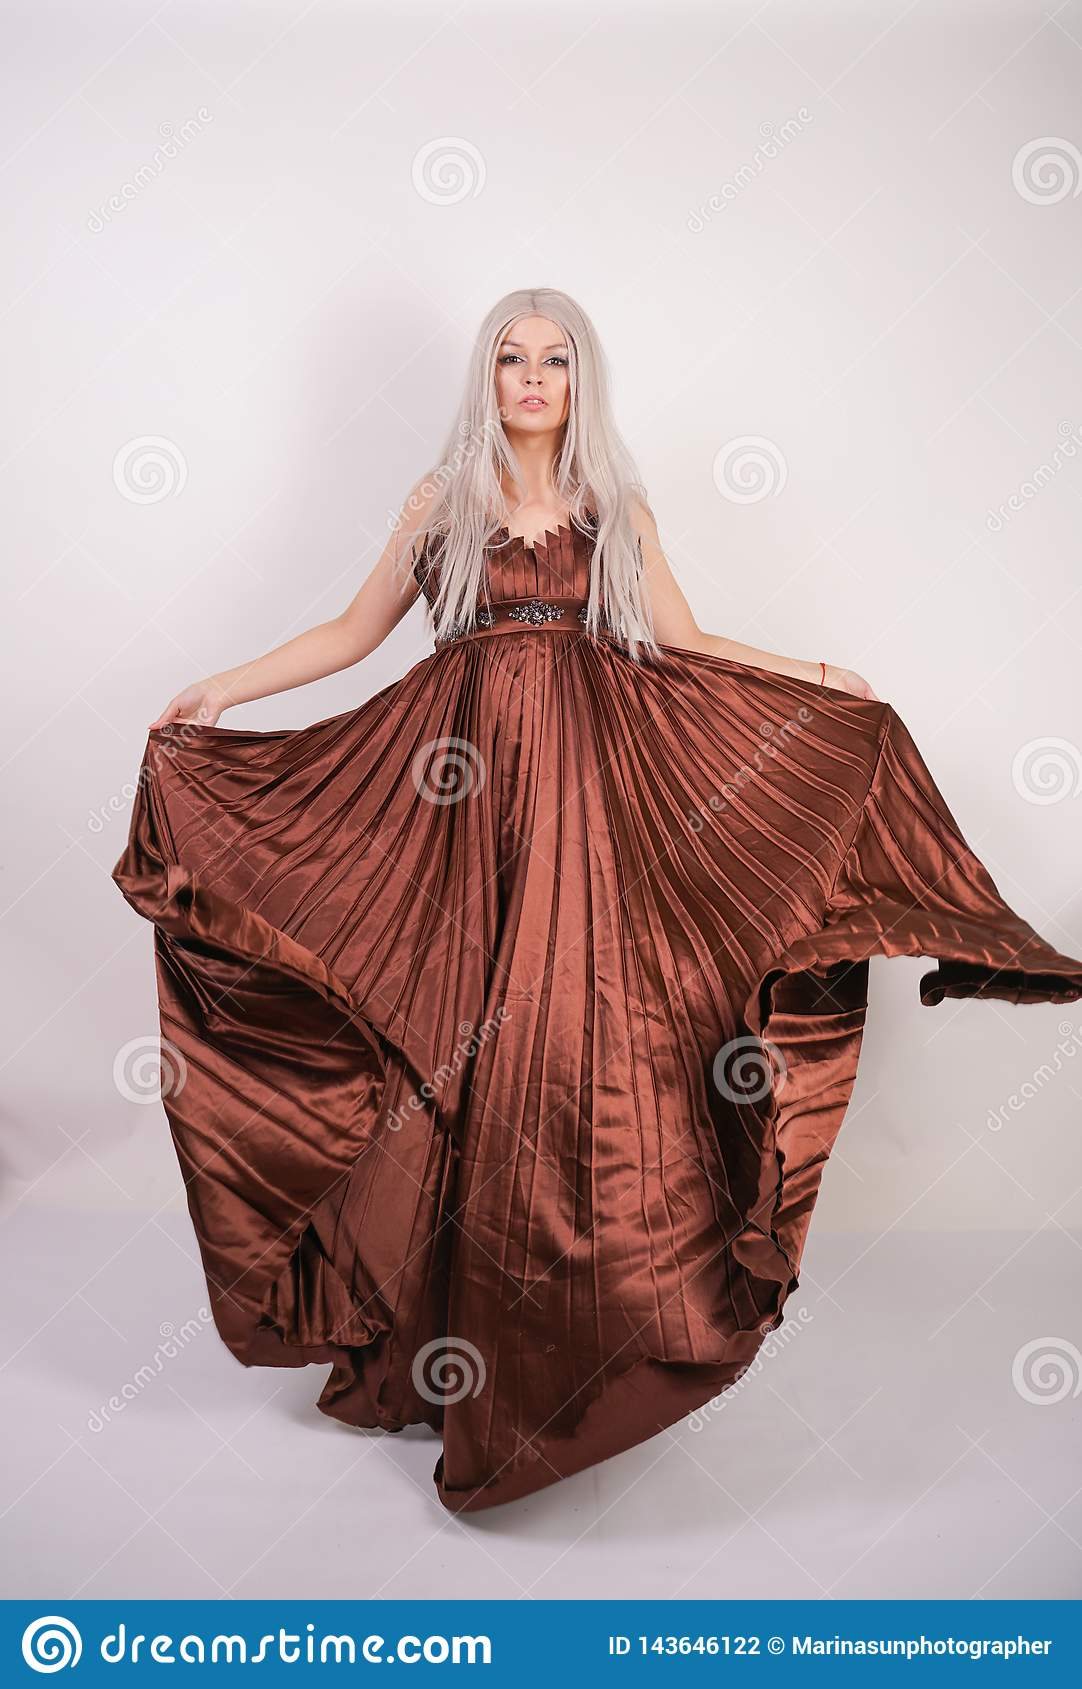 Luxury blonde caucasian model girl in chocolate color long evening dress made of pleated fabric waving a flying dress and stands o